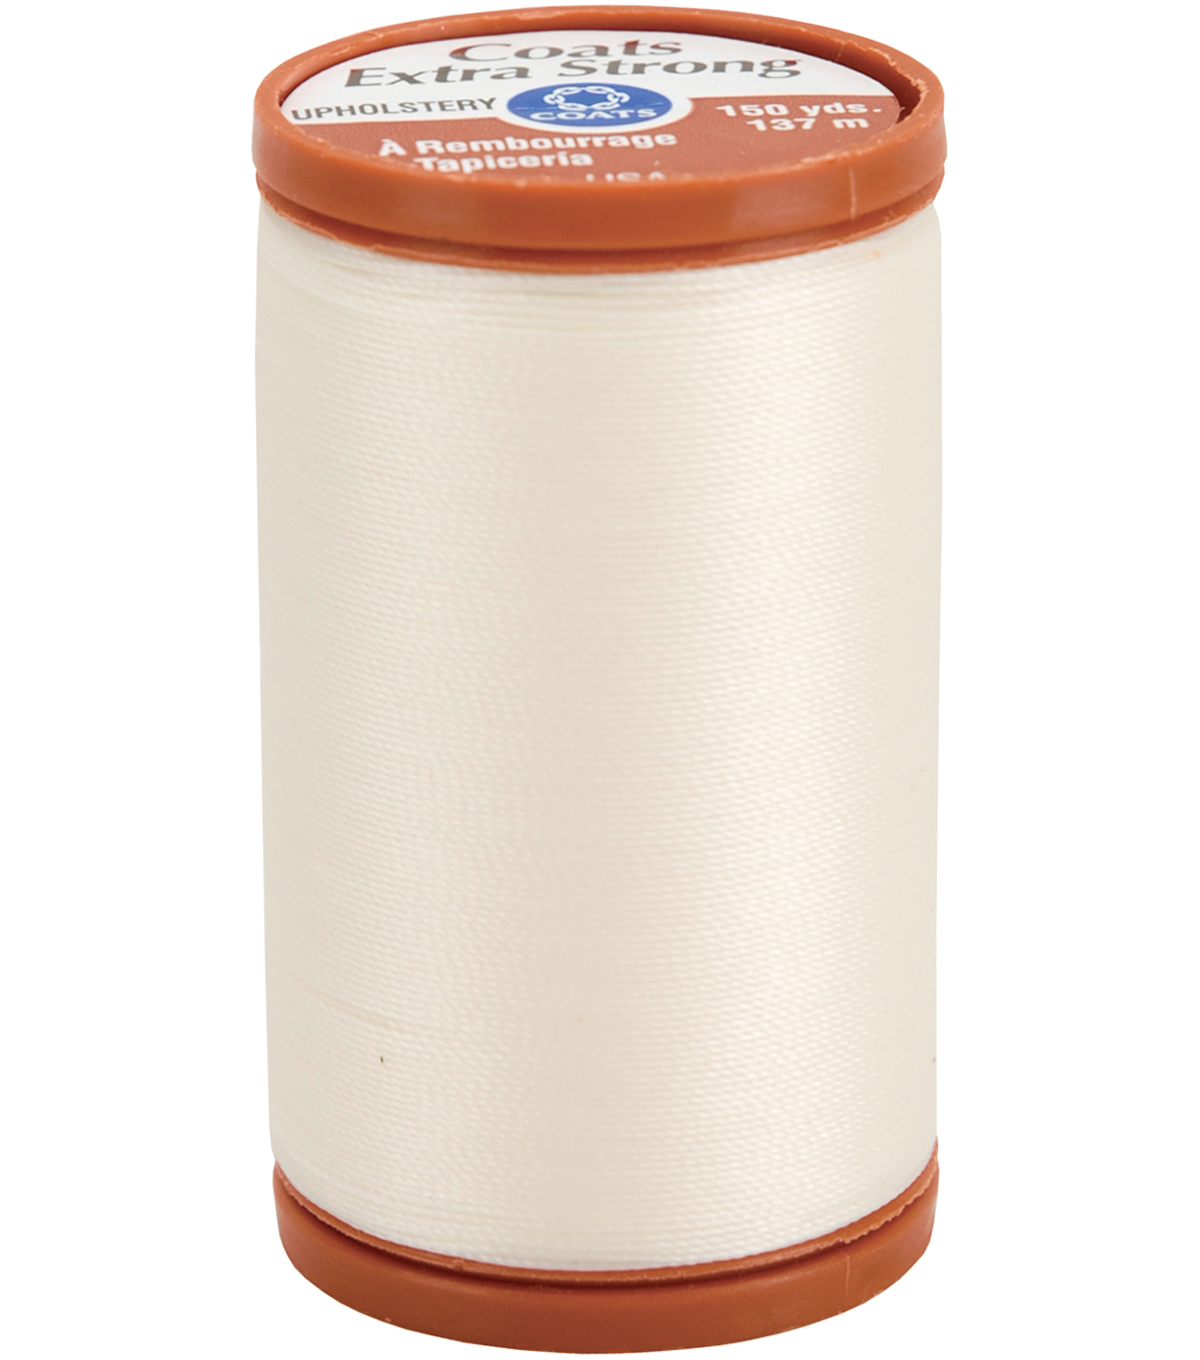 Coats & Clark Extra Strong & Upholstery Thread 150 yd , Natural